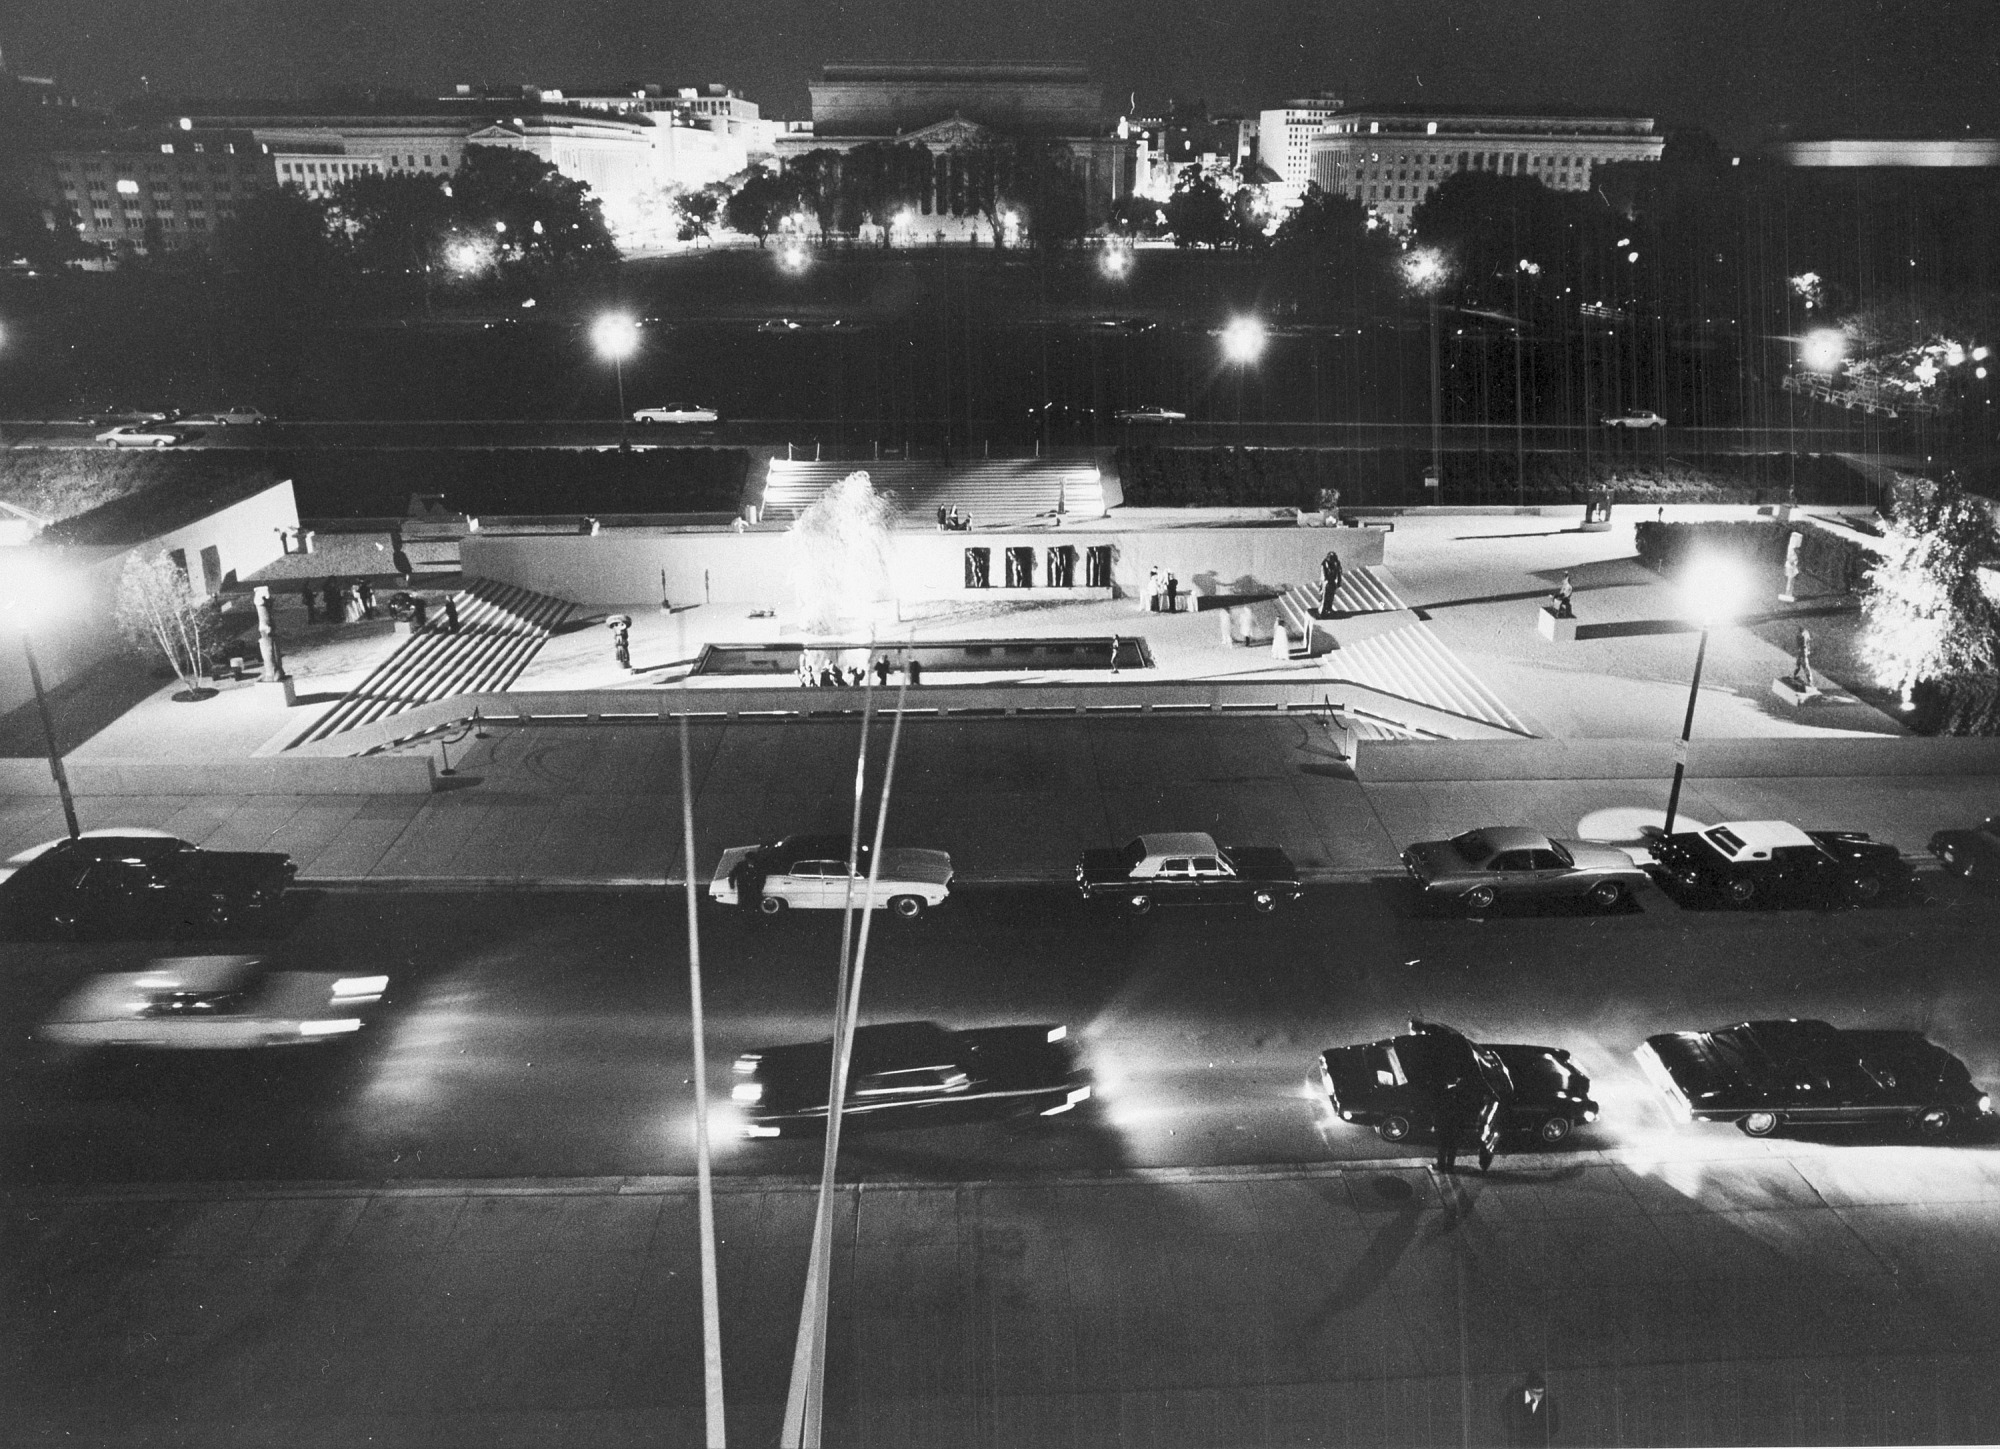 Hirshhorn Museum on Opening Night, by Unknown, 1974, Smithsonian Archives - History Div, 94-2860.